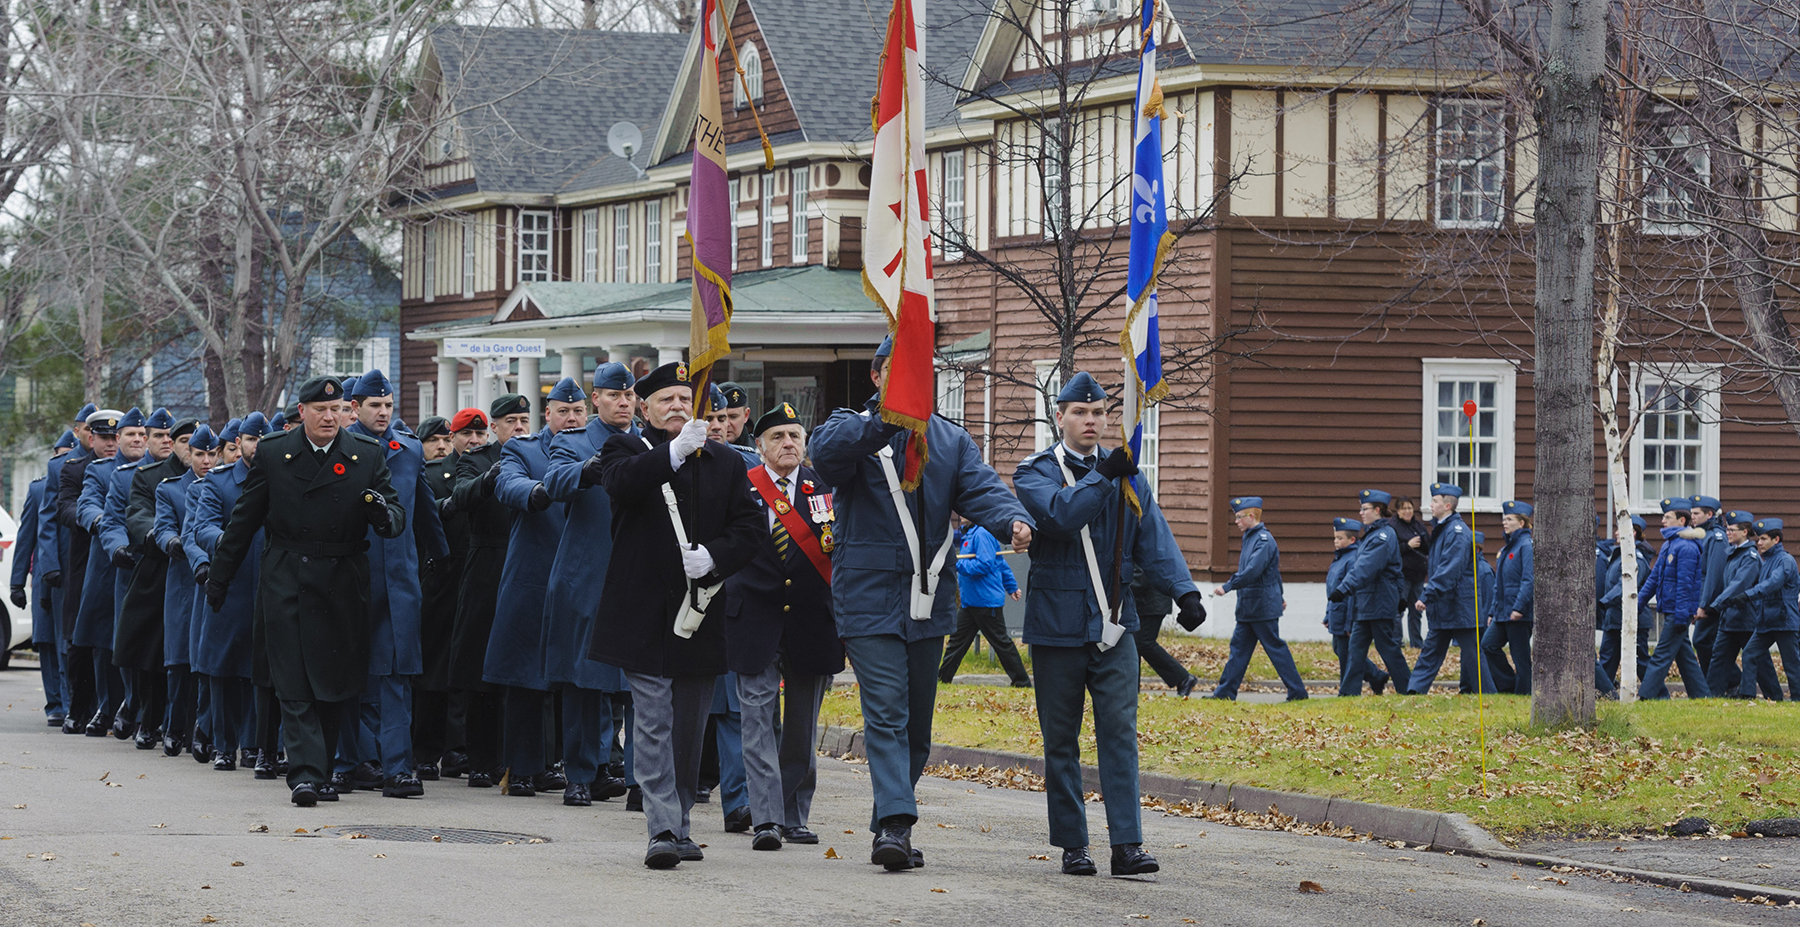 Military personnel from 2 Air Expeditionary Wing, Canadian Forces Base Bagotville, parade during the Remembrance Day ceremony in Alma, Québec, on November 11, 2016. PHOTO: Corporal Karine Chalifour